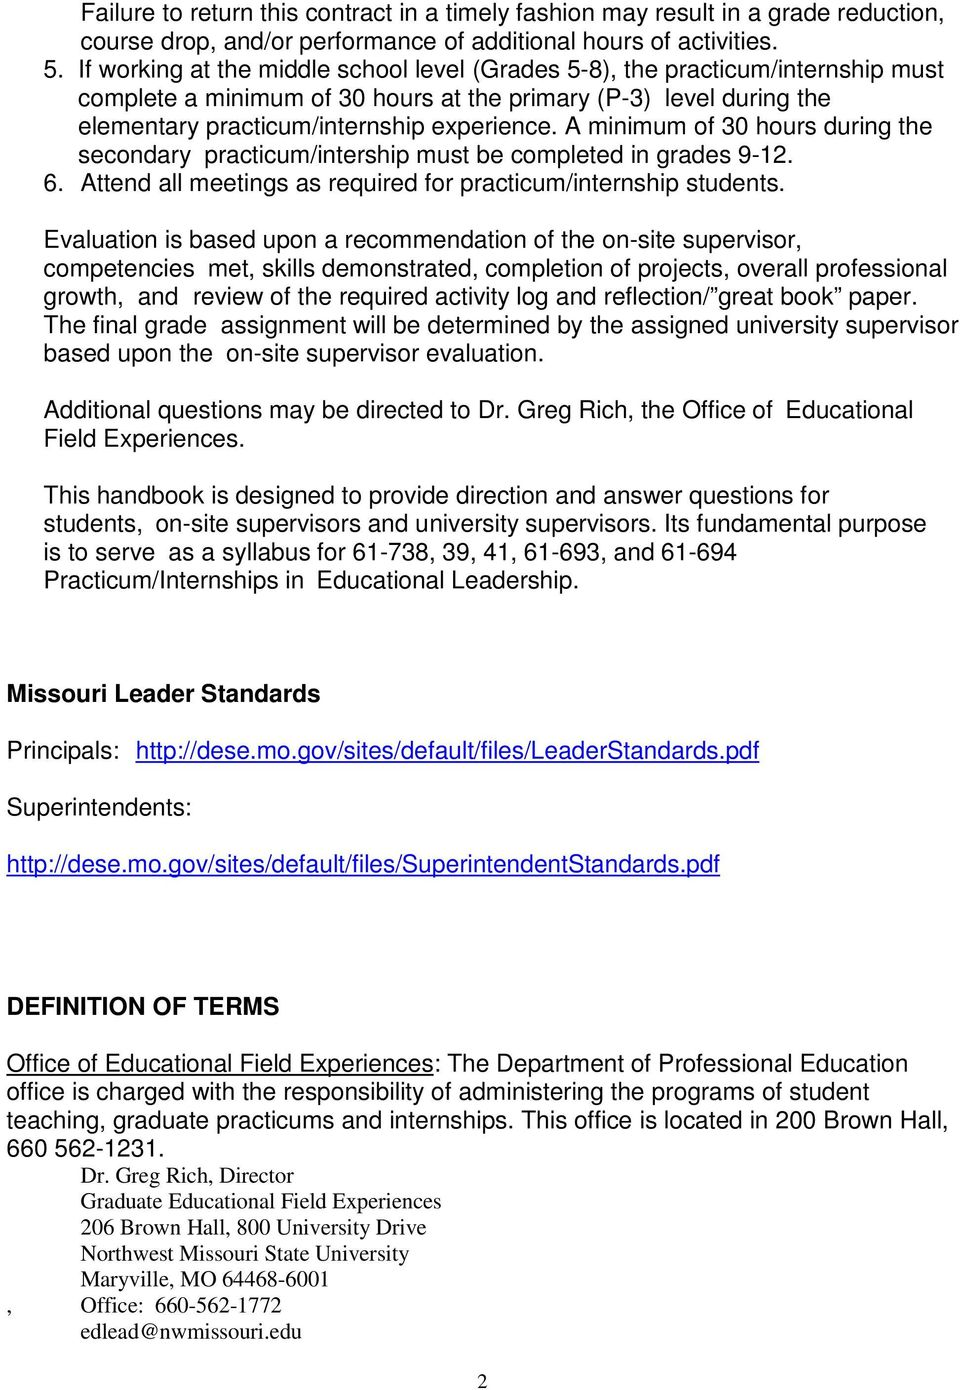 English Learning Essay  Examples Of Persuasive Essays For High School also Thesis For Compare Contrast Essay American Federalism Essays Essay With Thesis